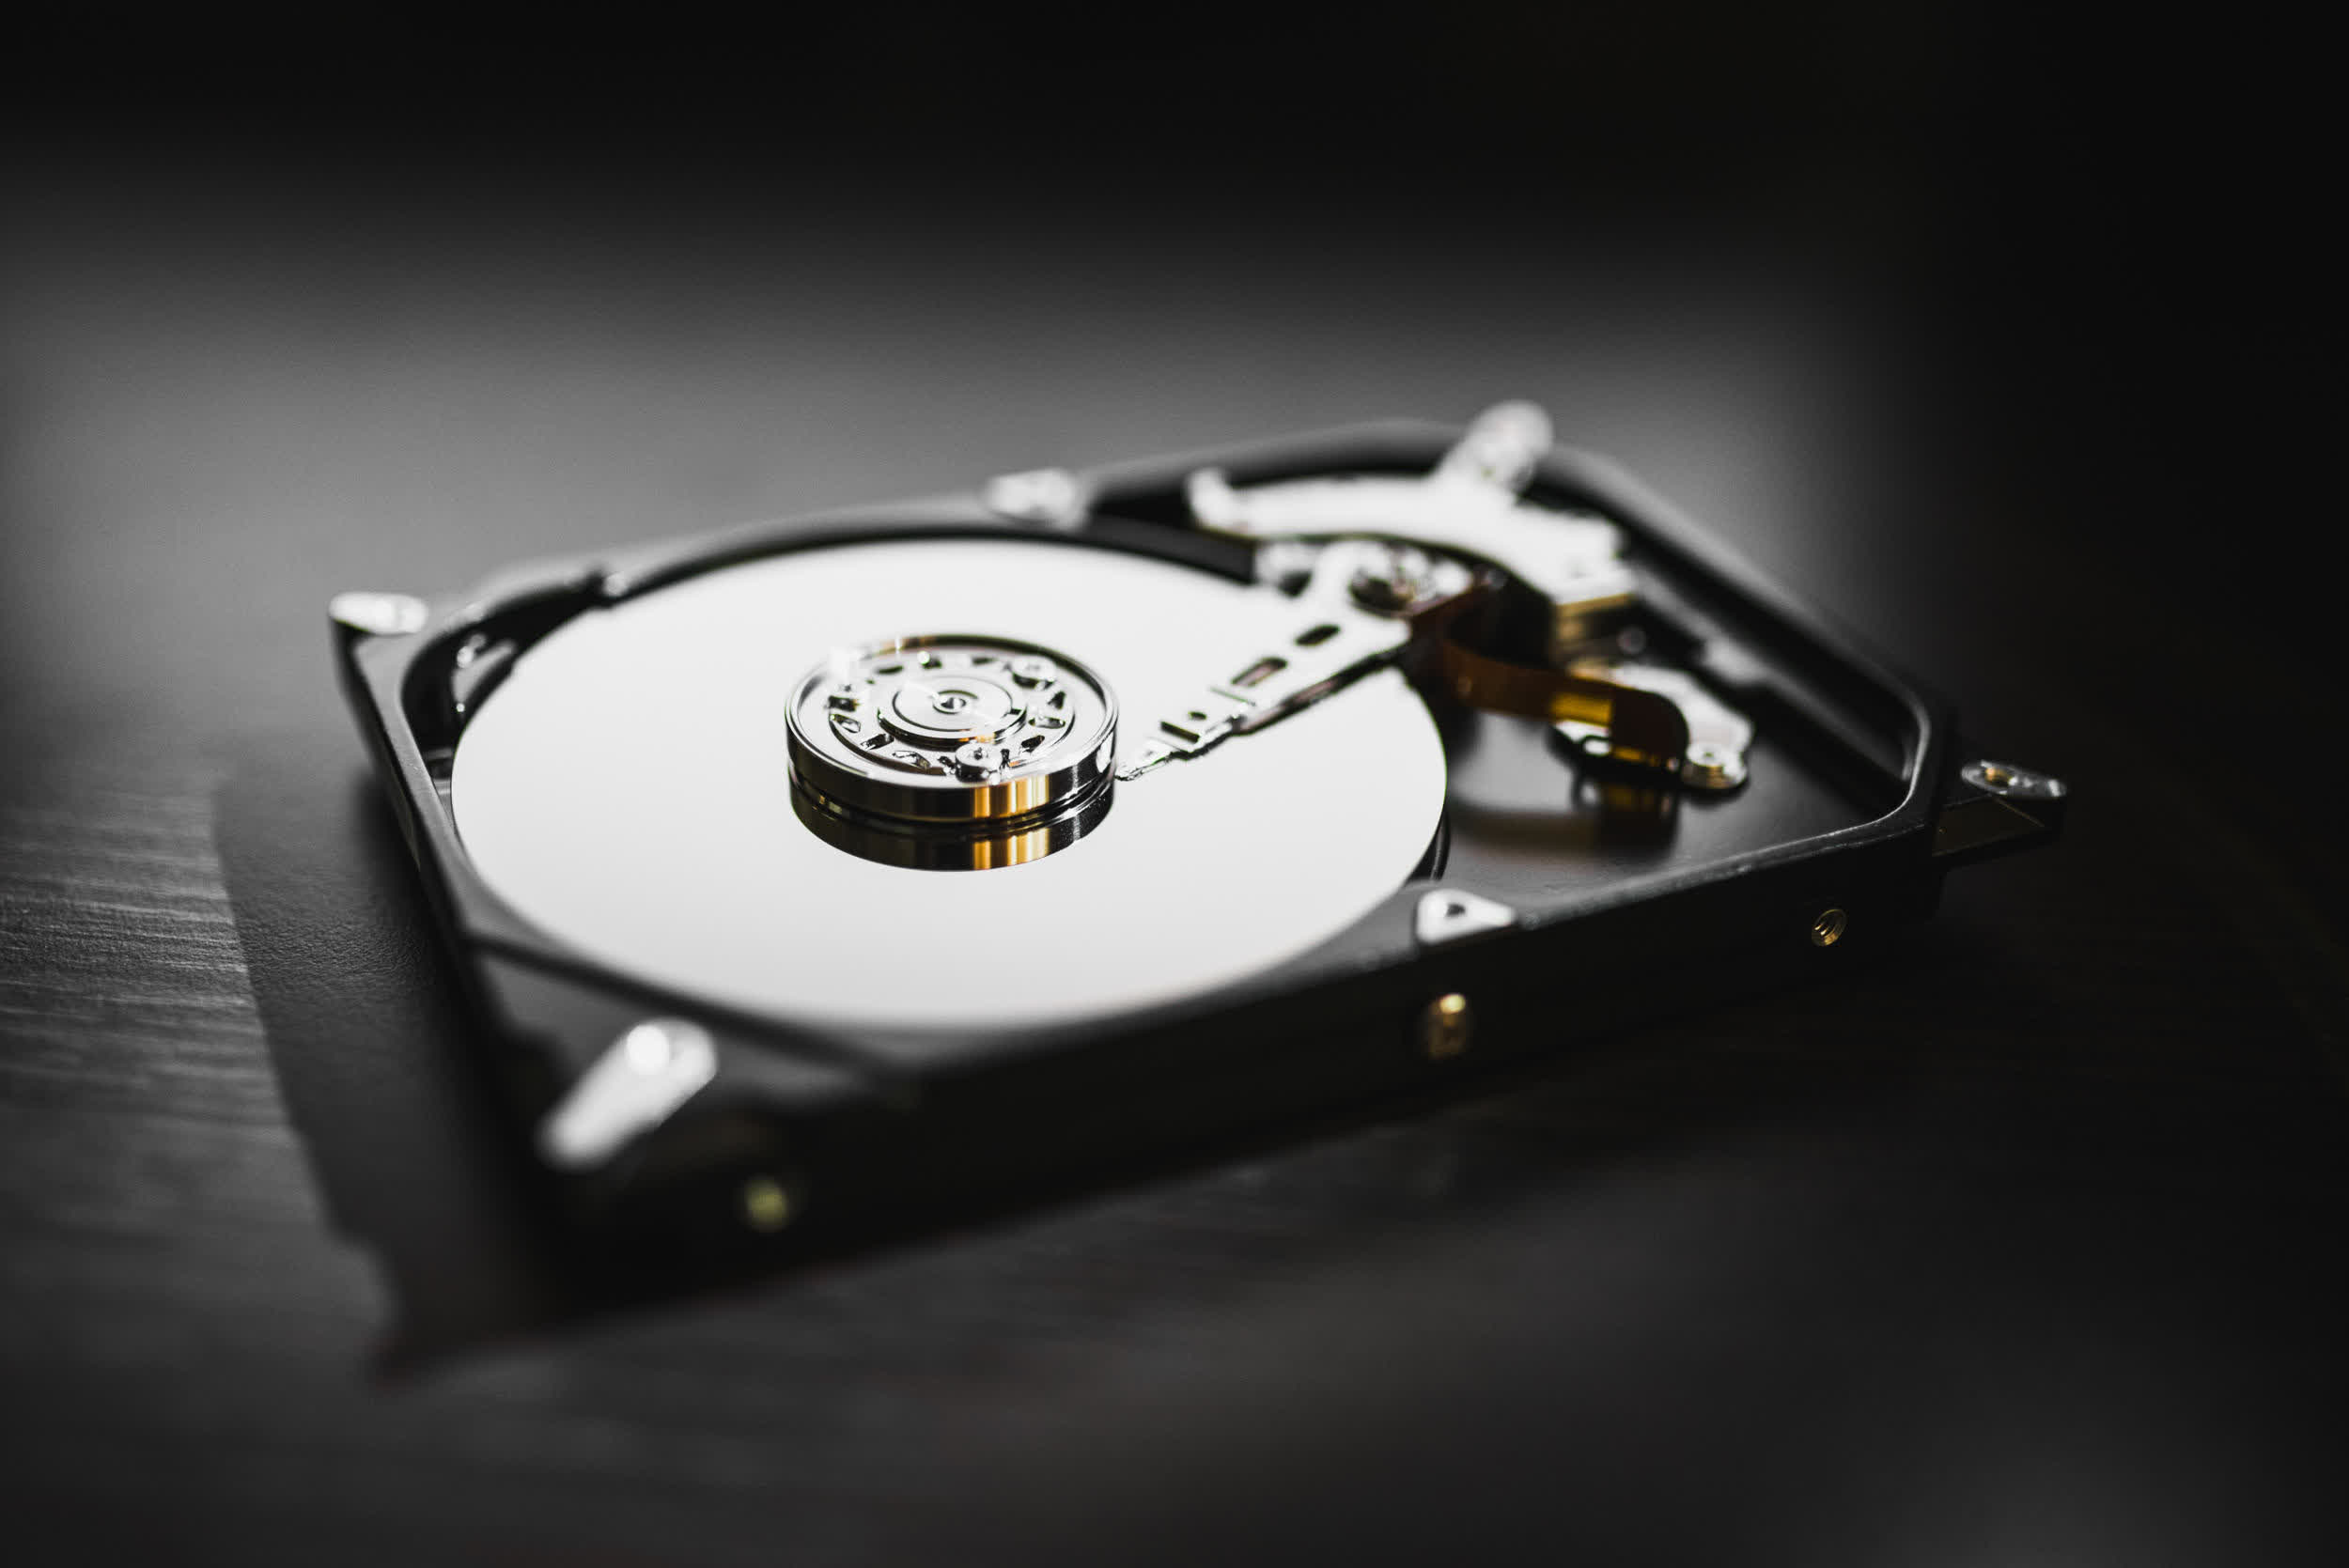 5 Signs Your Storage Drive Is About to Fail